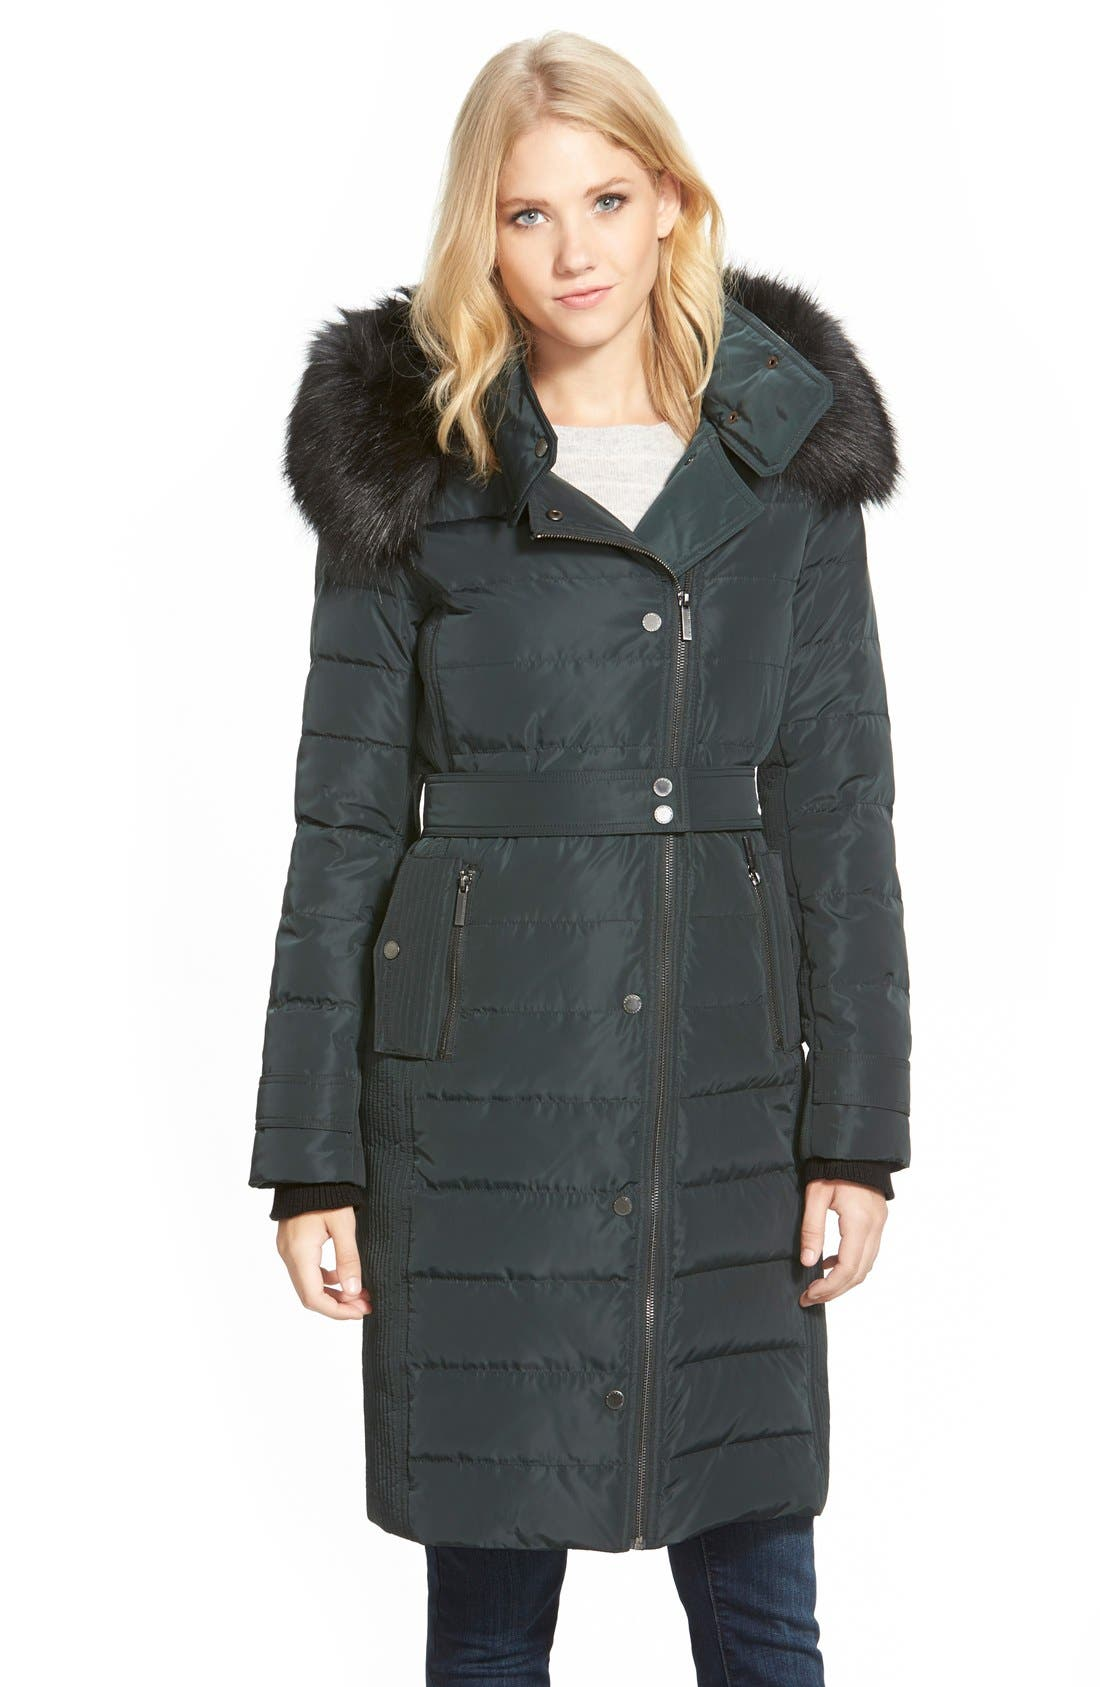 Alternate Image 1 Selected - French Connection Asymmetrical Down Coat with Faux Fur Trim